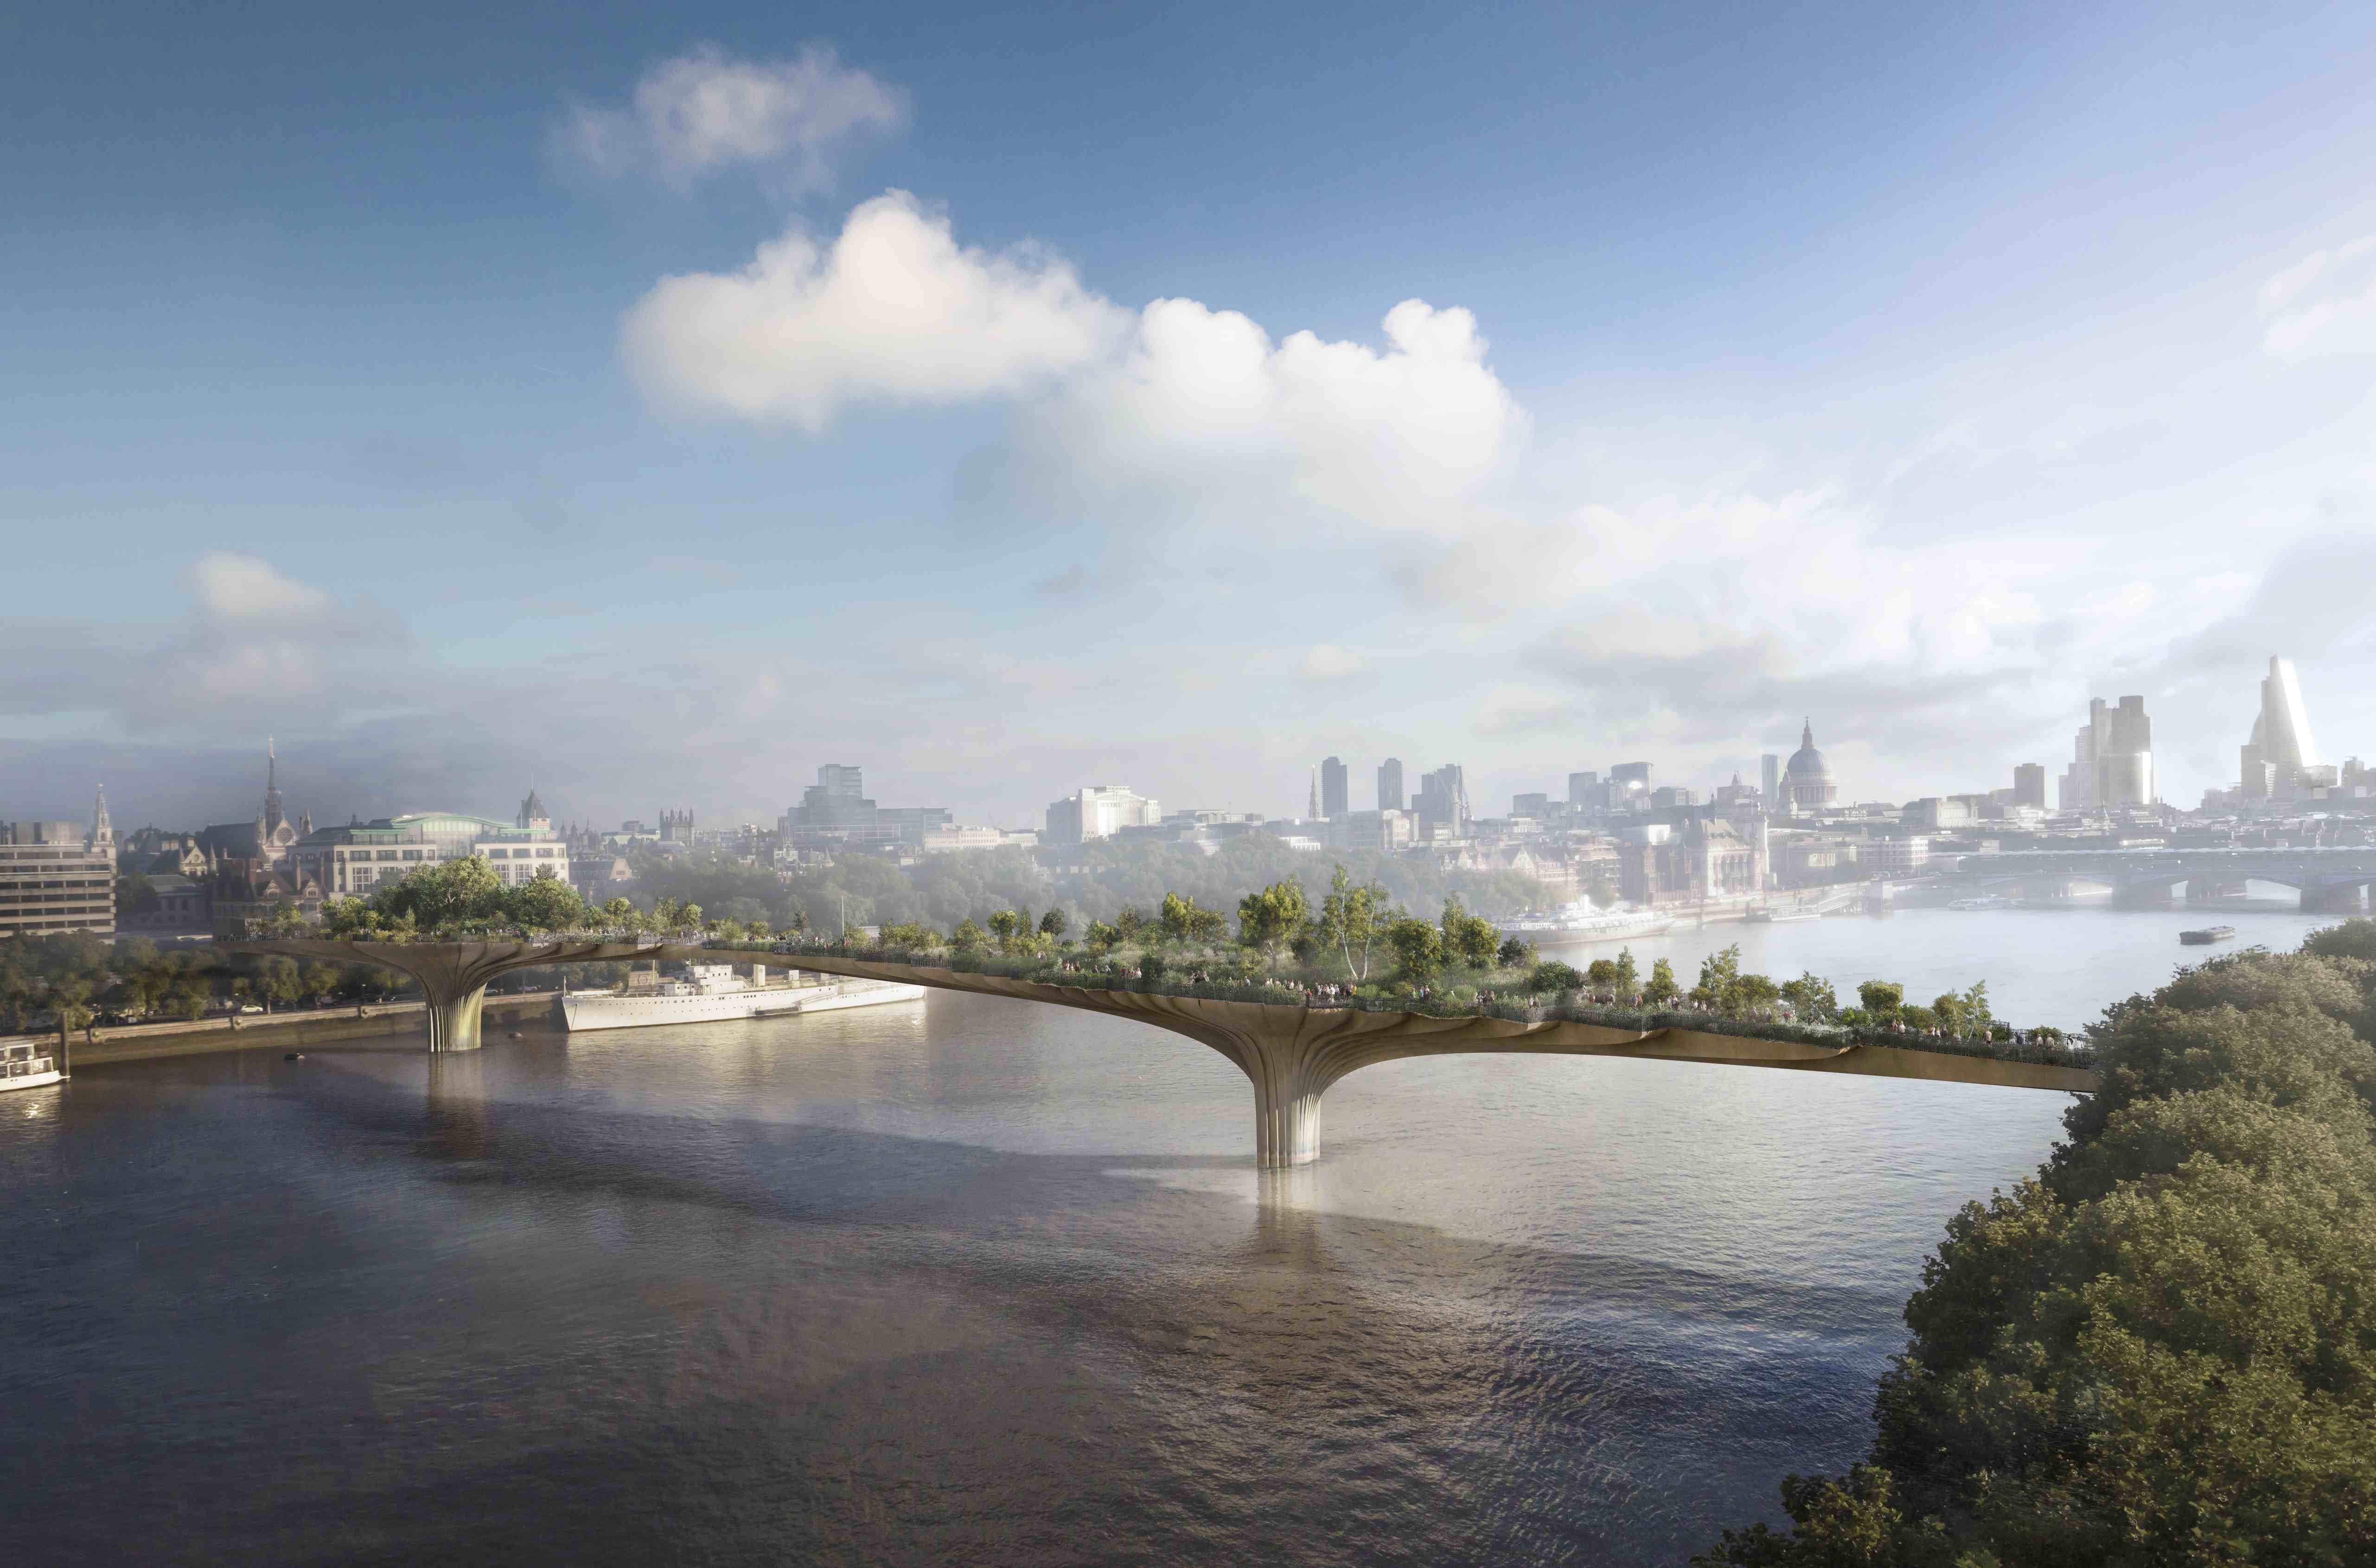 The Garden Bridge in London